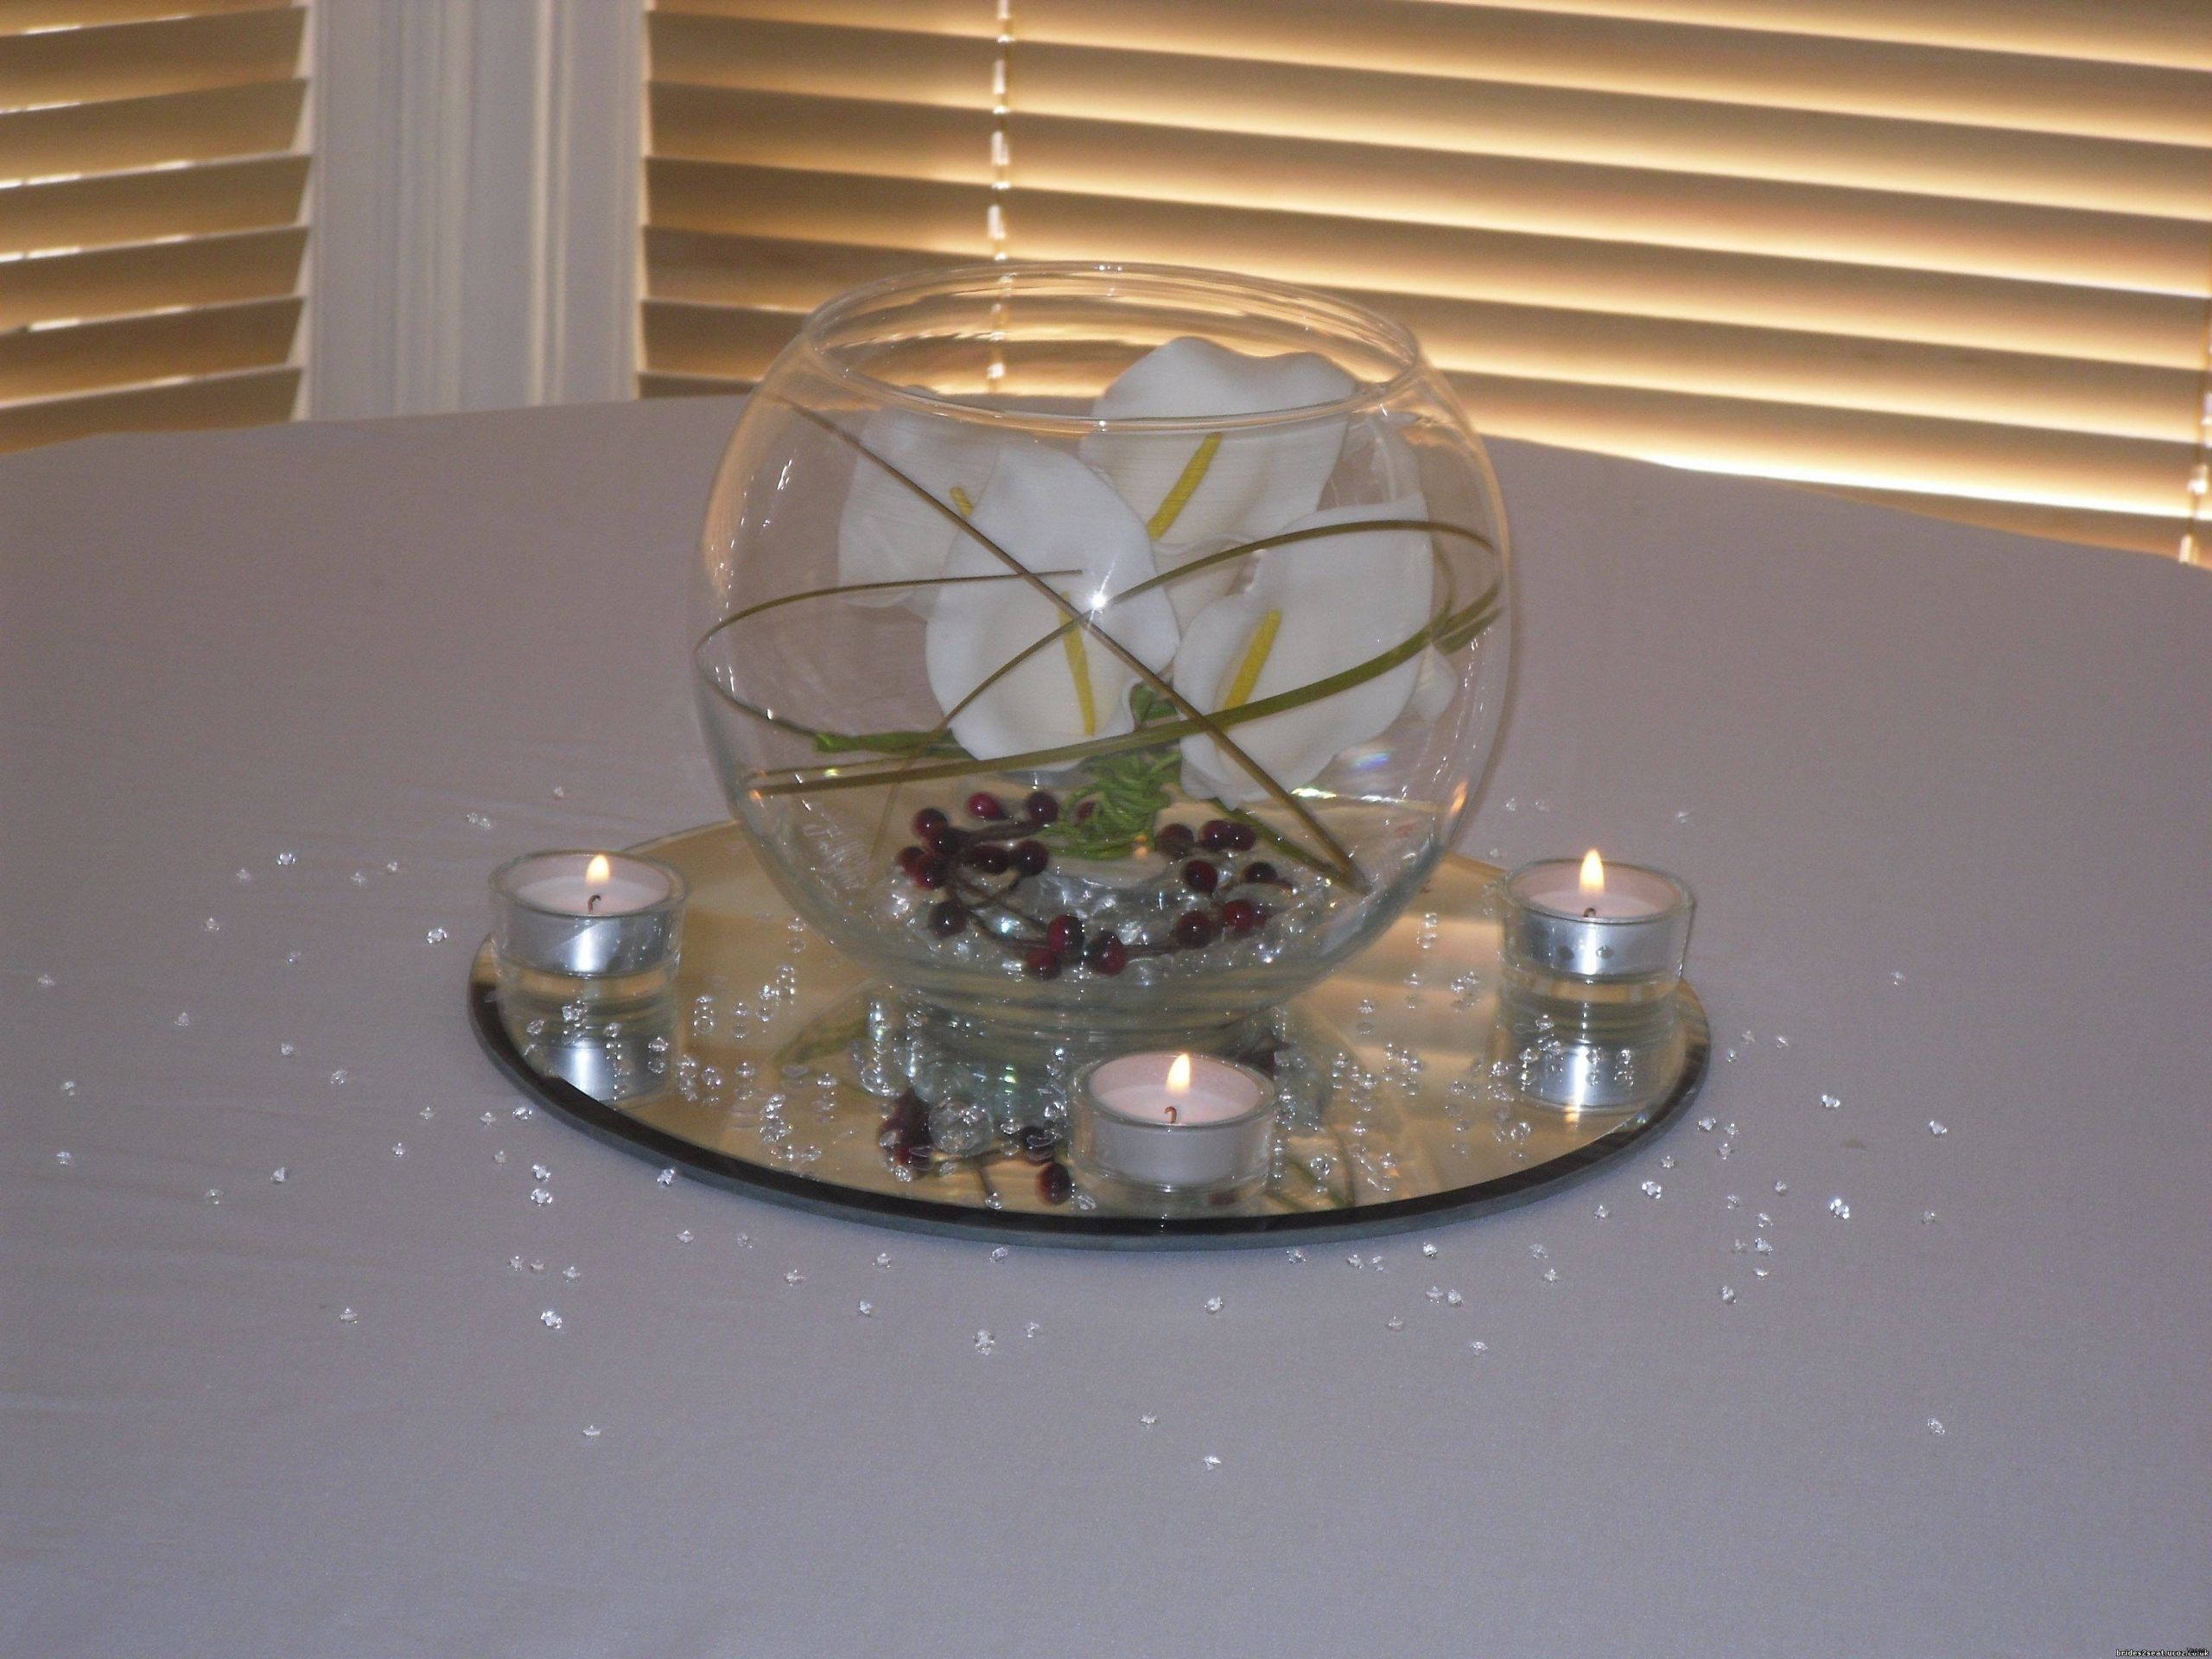 fish vase home goods of fish in vase photos vases fish in vase centerpiece bubble with pertaining to fish in vase photos vases fish in vase centerpiece bubble with mirrori 0d inspiration